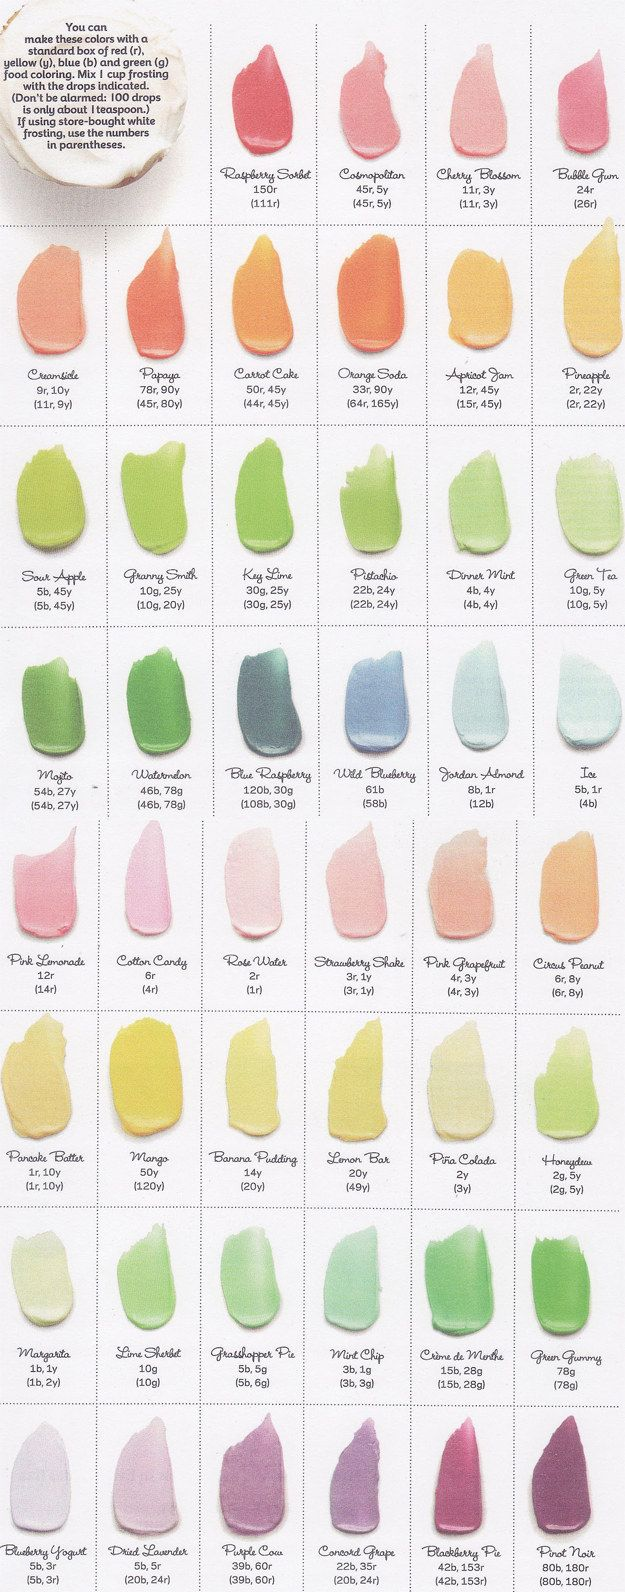 Food Coloring Guide & Flavor Guide + Frosting Recipes